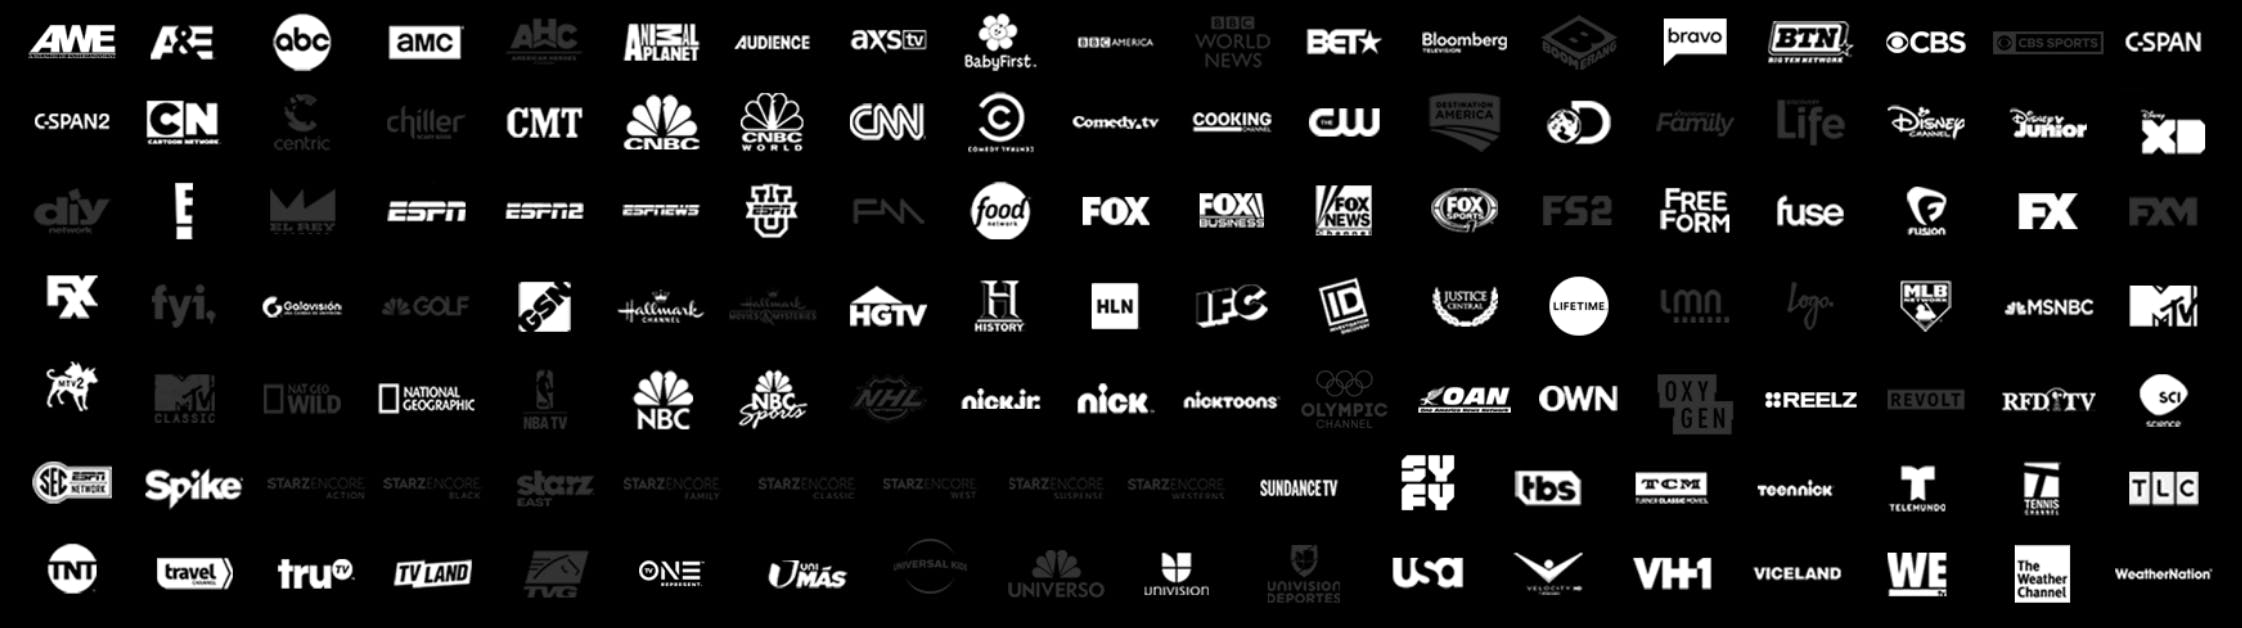 directv now channels for the just right package